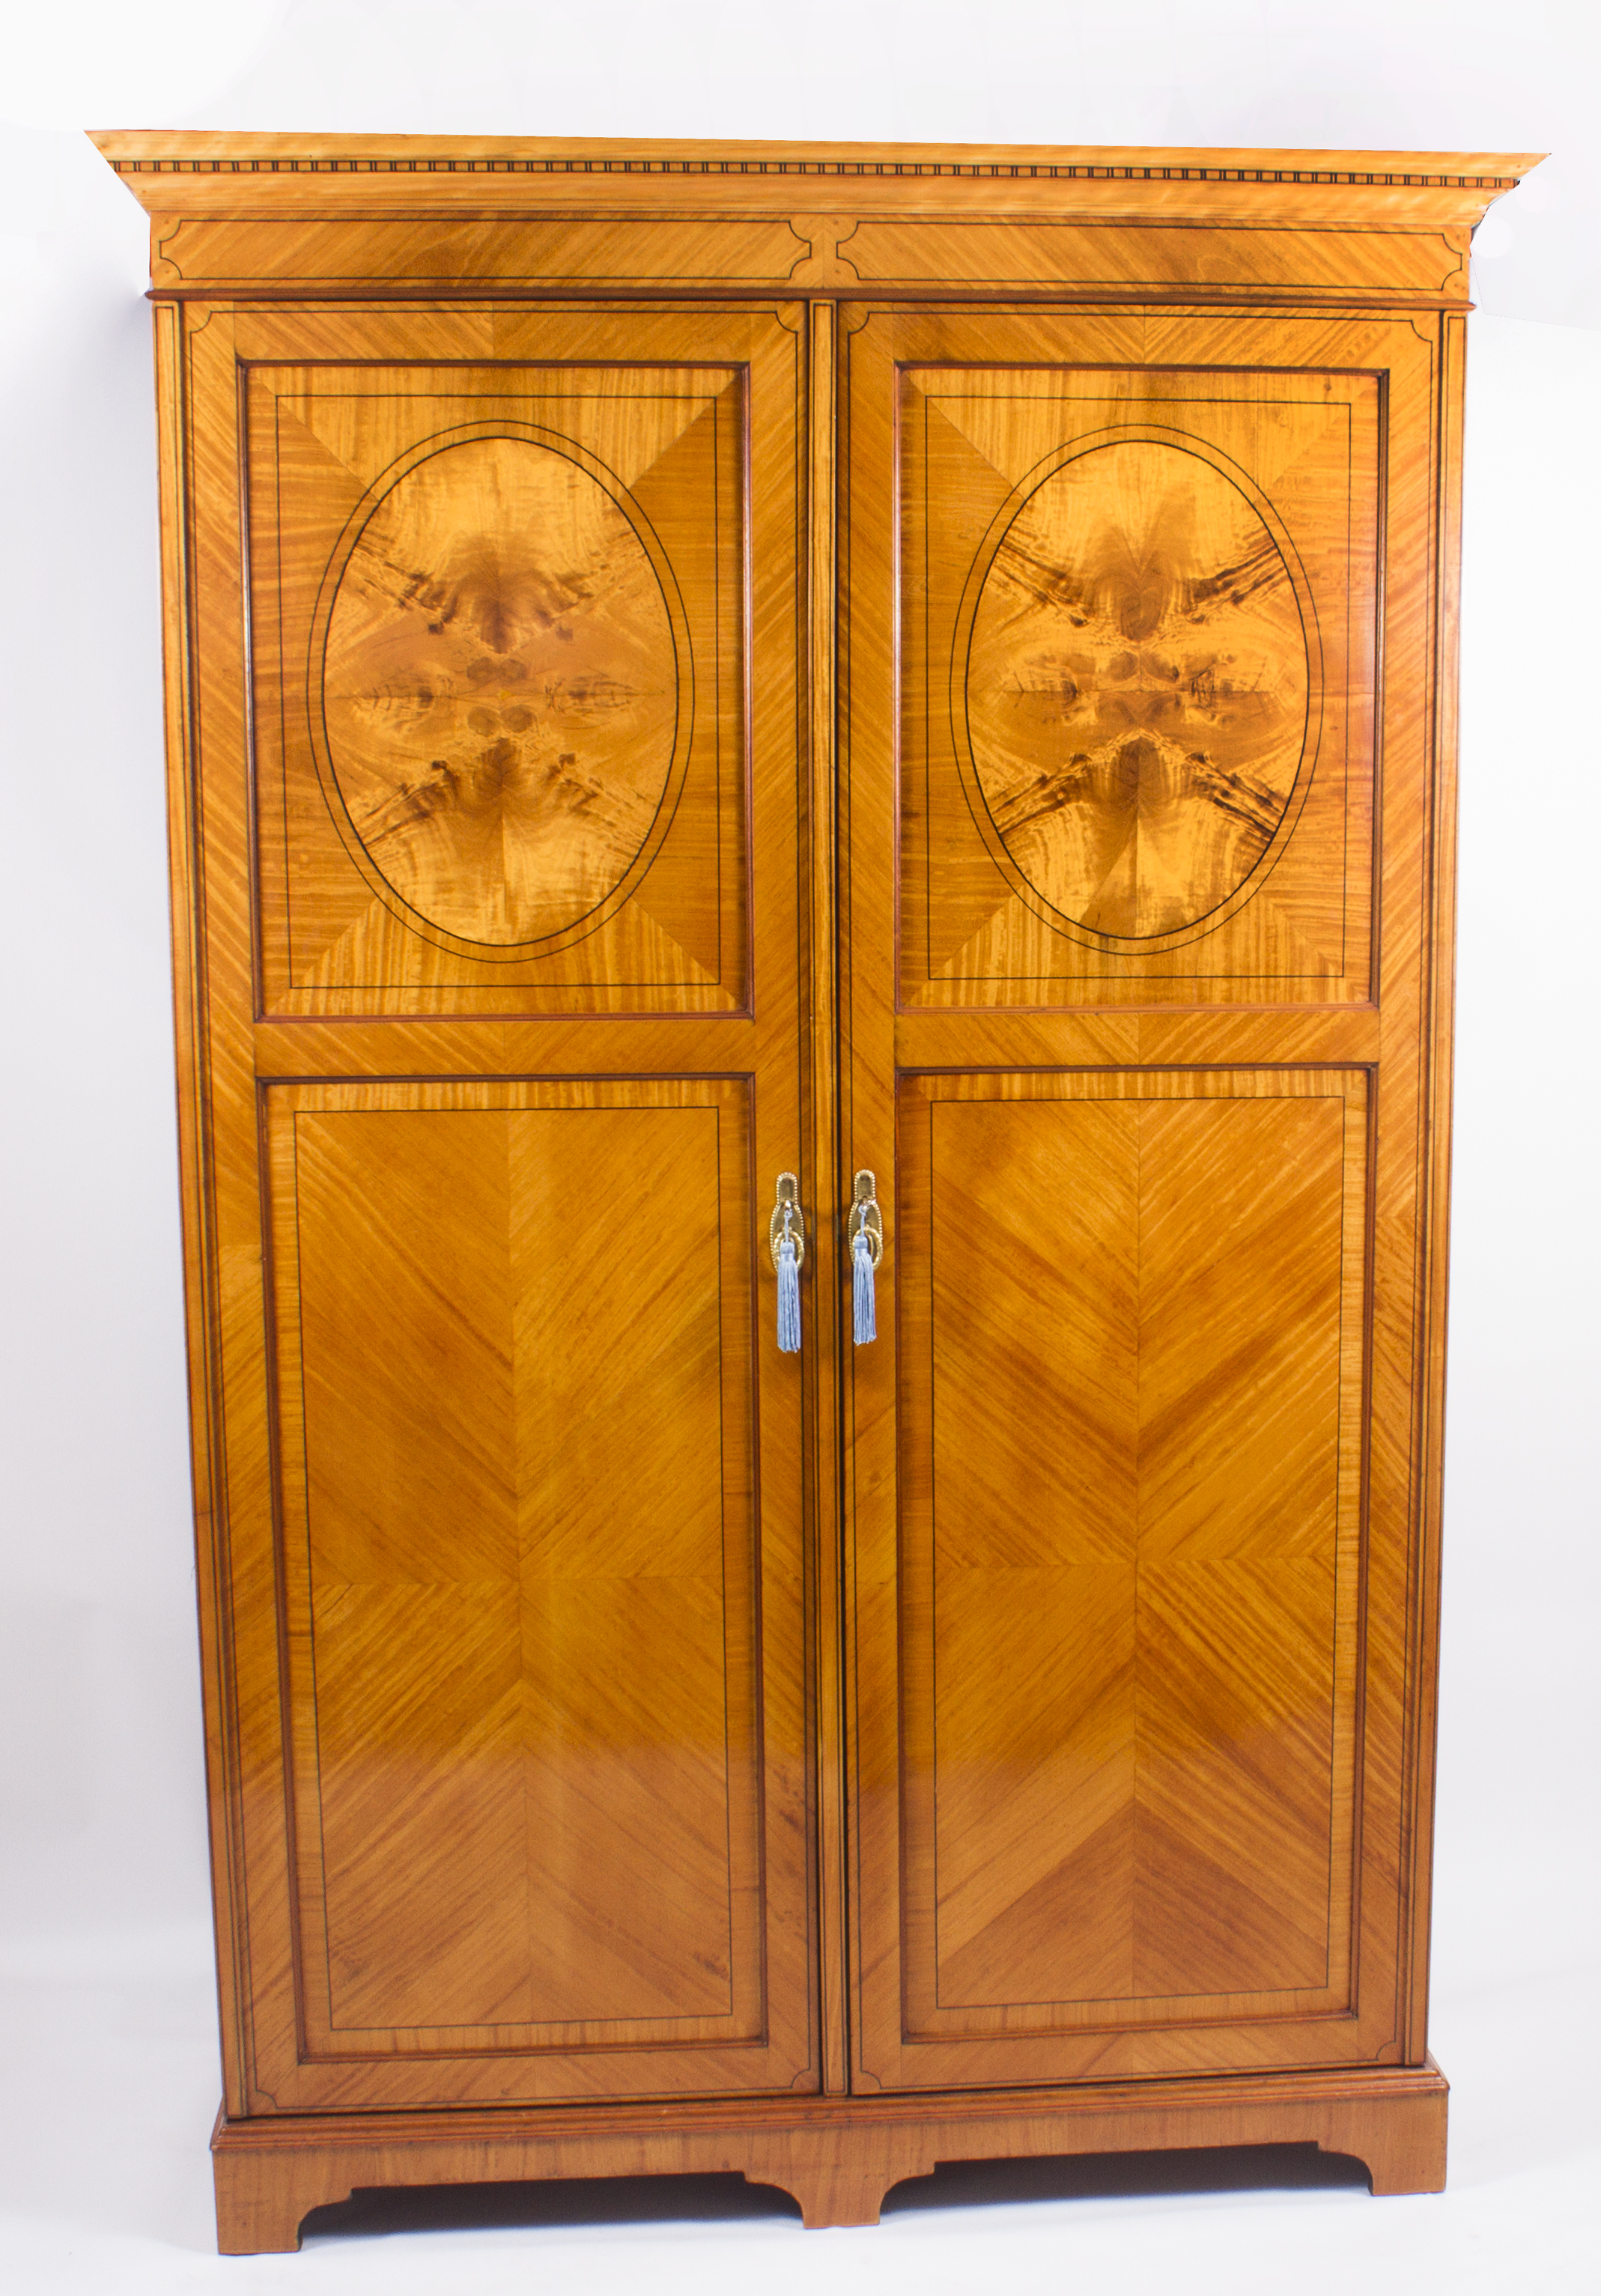 Edwardian/victorian Wardrobe Beautiful In Colour Antique Furniture